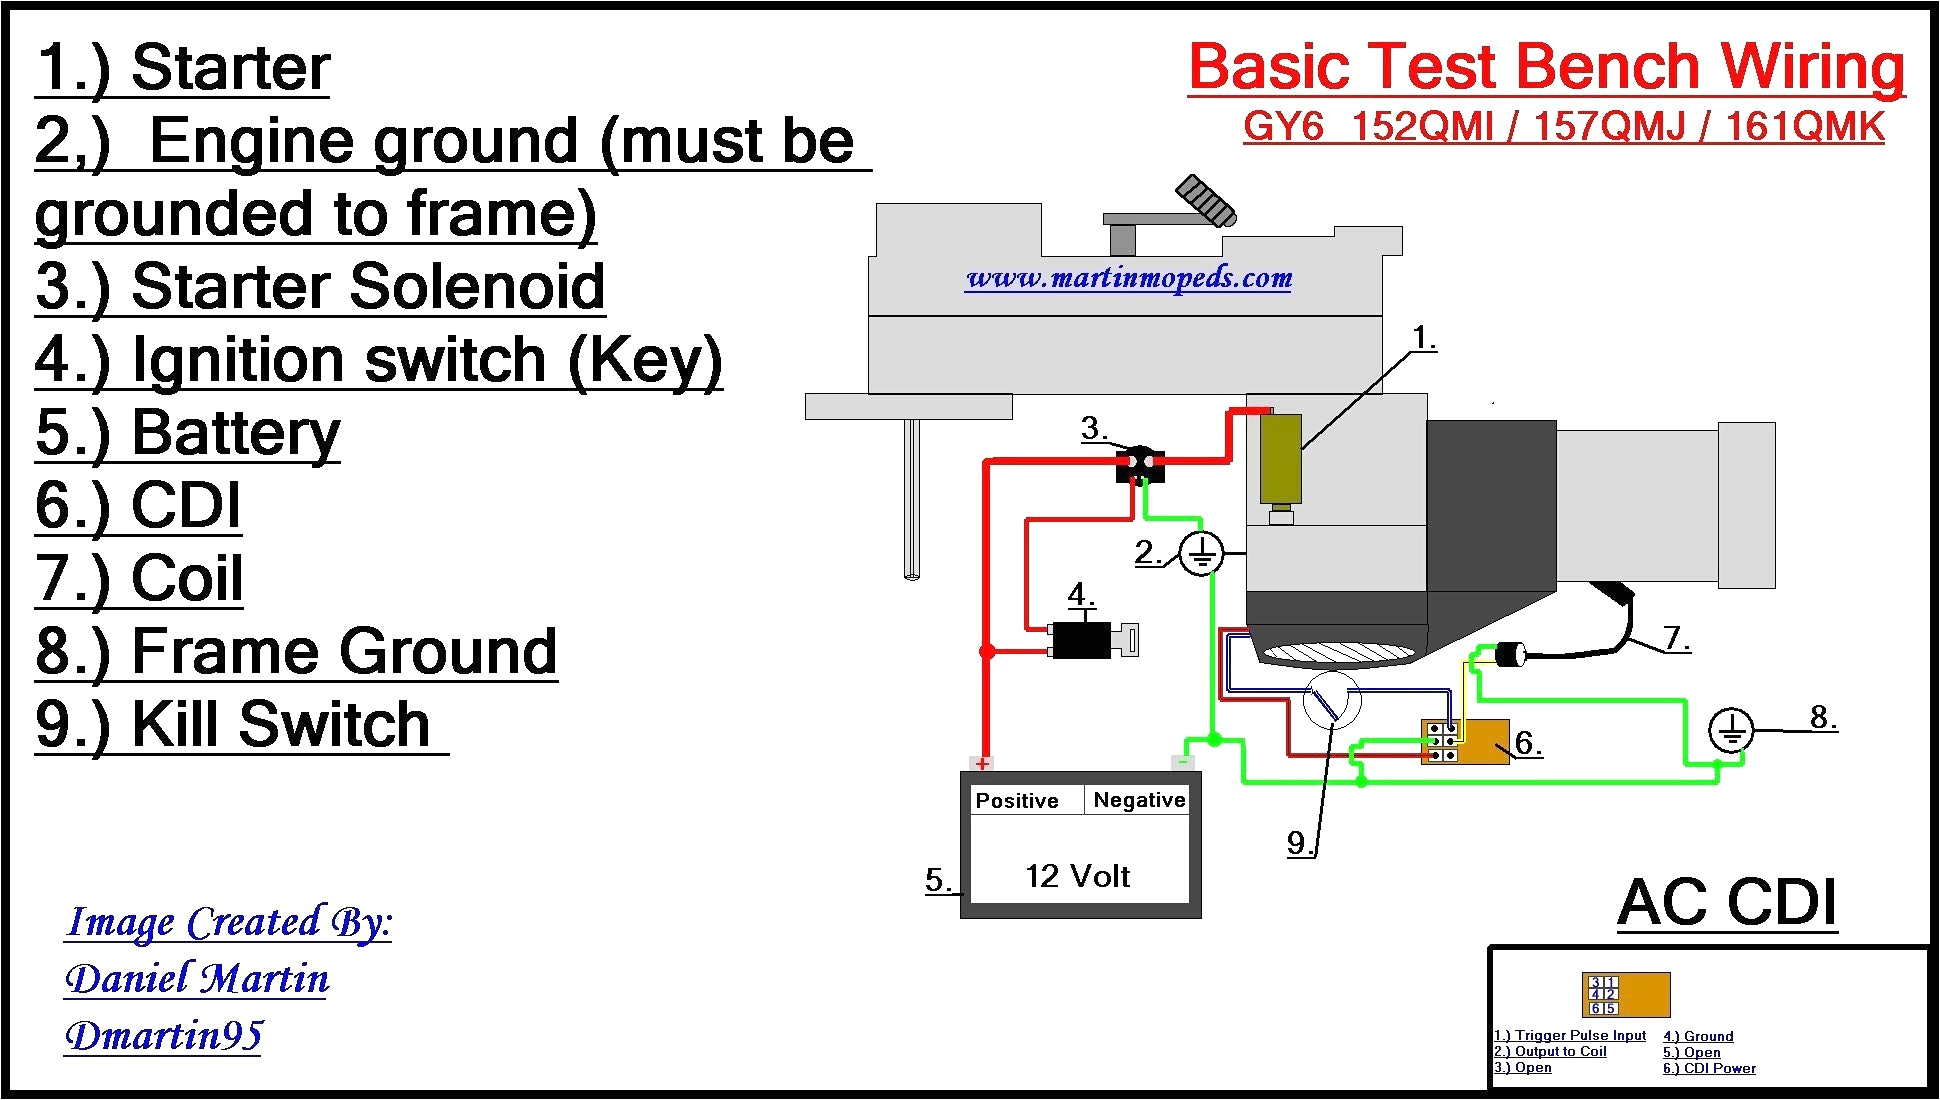 scooter ignition switch wiring diagram best of scooter ignition switch wiring diagram 4 wire at to basic of scooter ignition switch wiring diagram jpg